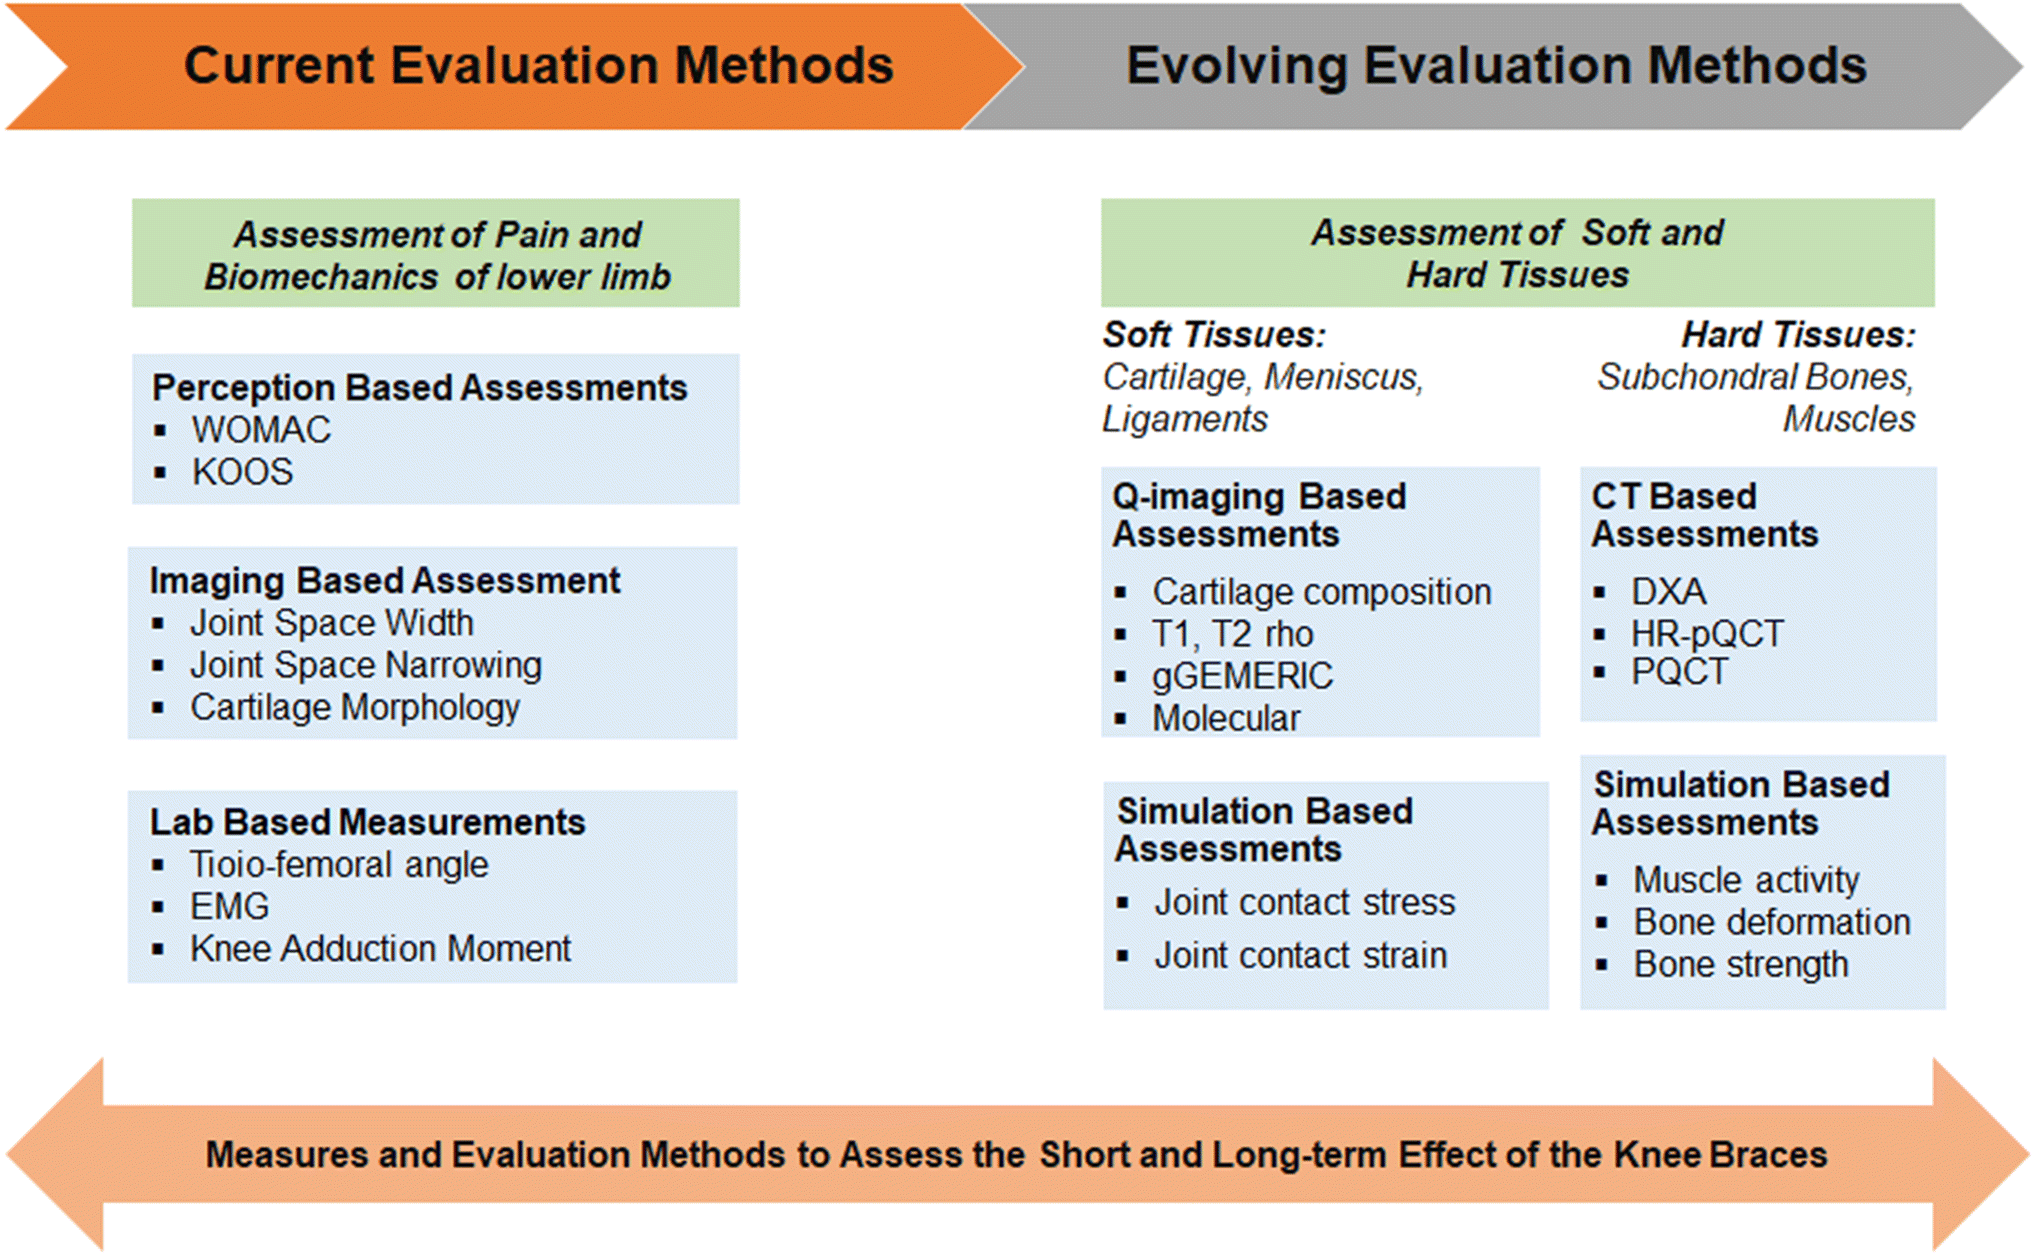 ca0104f8bb Methods for evaluating effects of unloader knee braces on joint ...